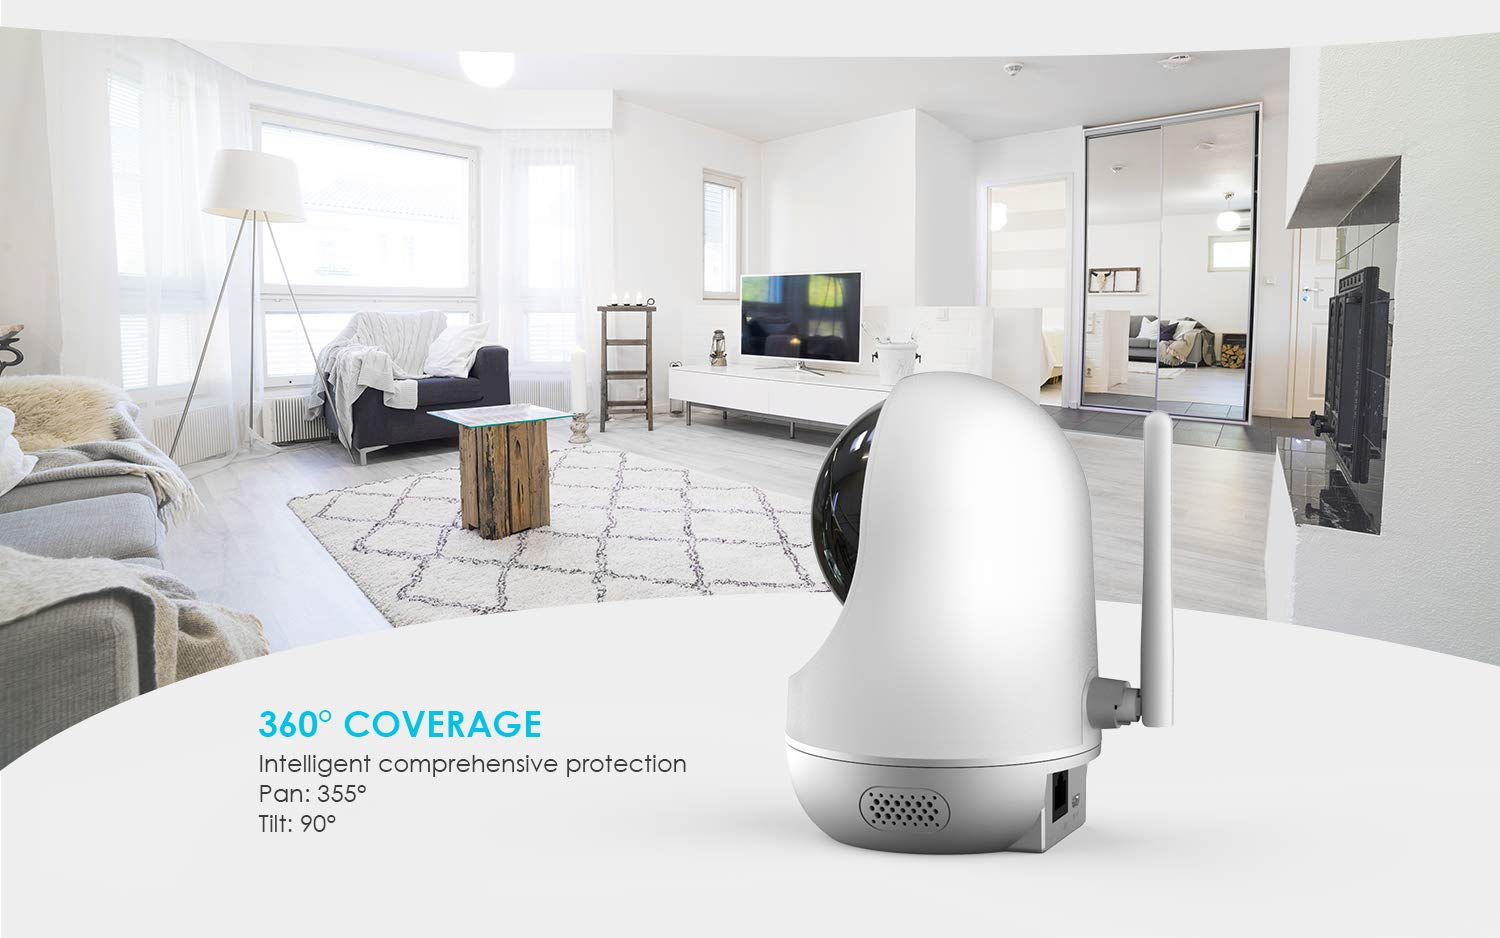 1080P Smart Indoor Home Security Surveillance CCTV Camera with Motion Tracking Remote Control for Baby//Elder//Pet Monitor Speed Playback ieGeek WiFi IP Security Camera Wireless Pet Camera